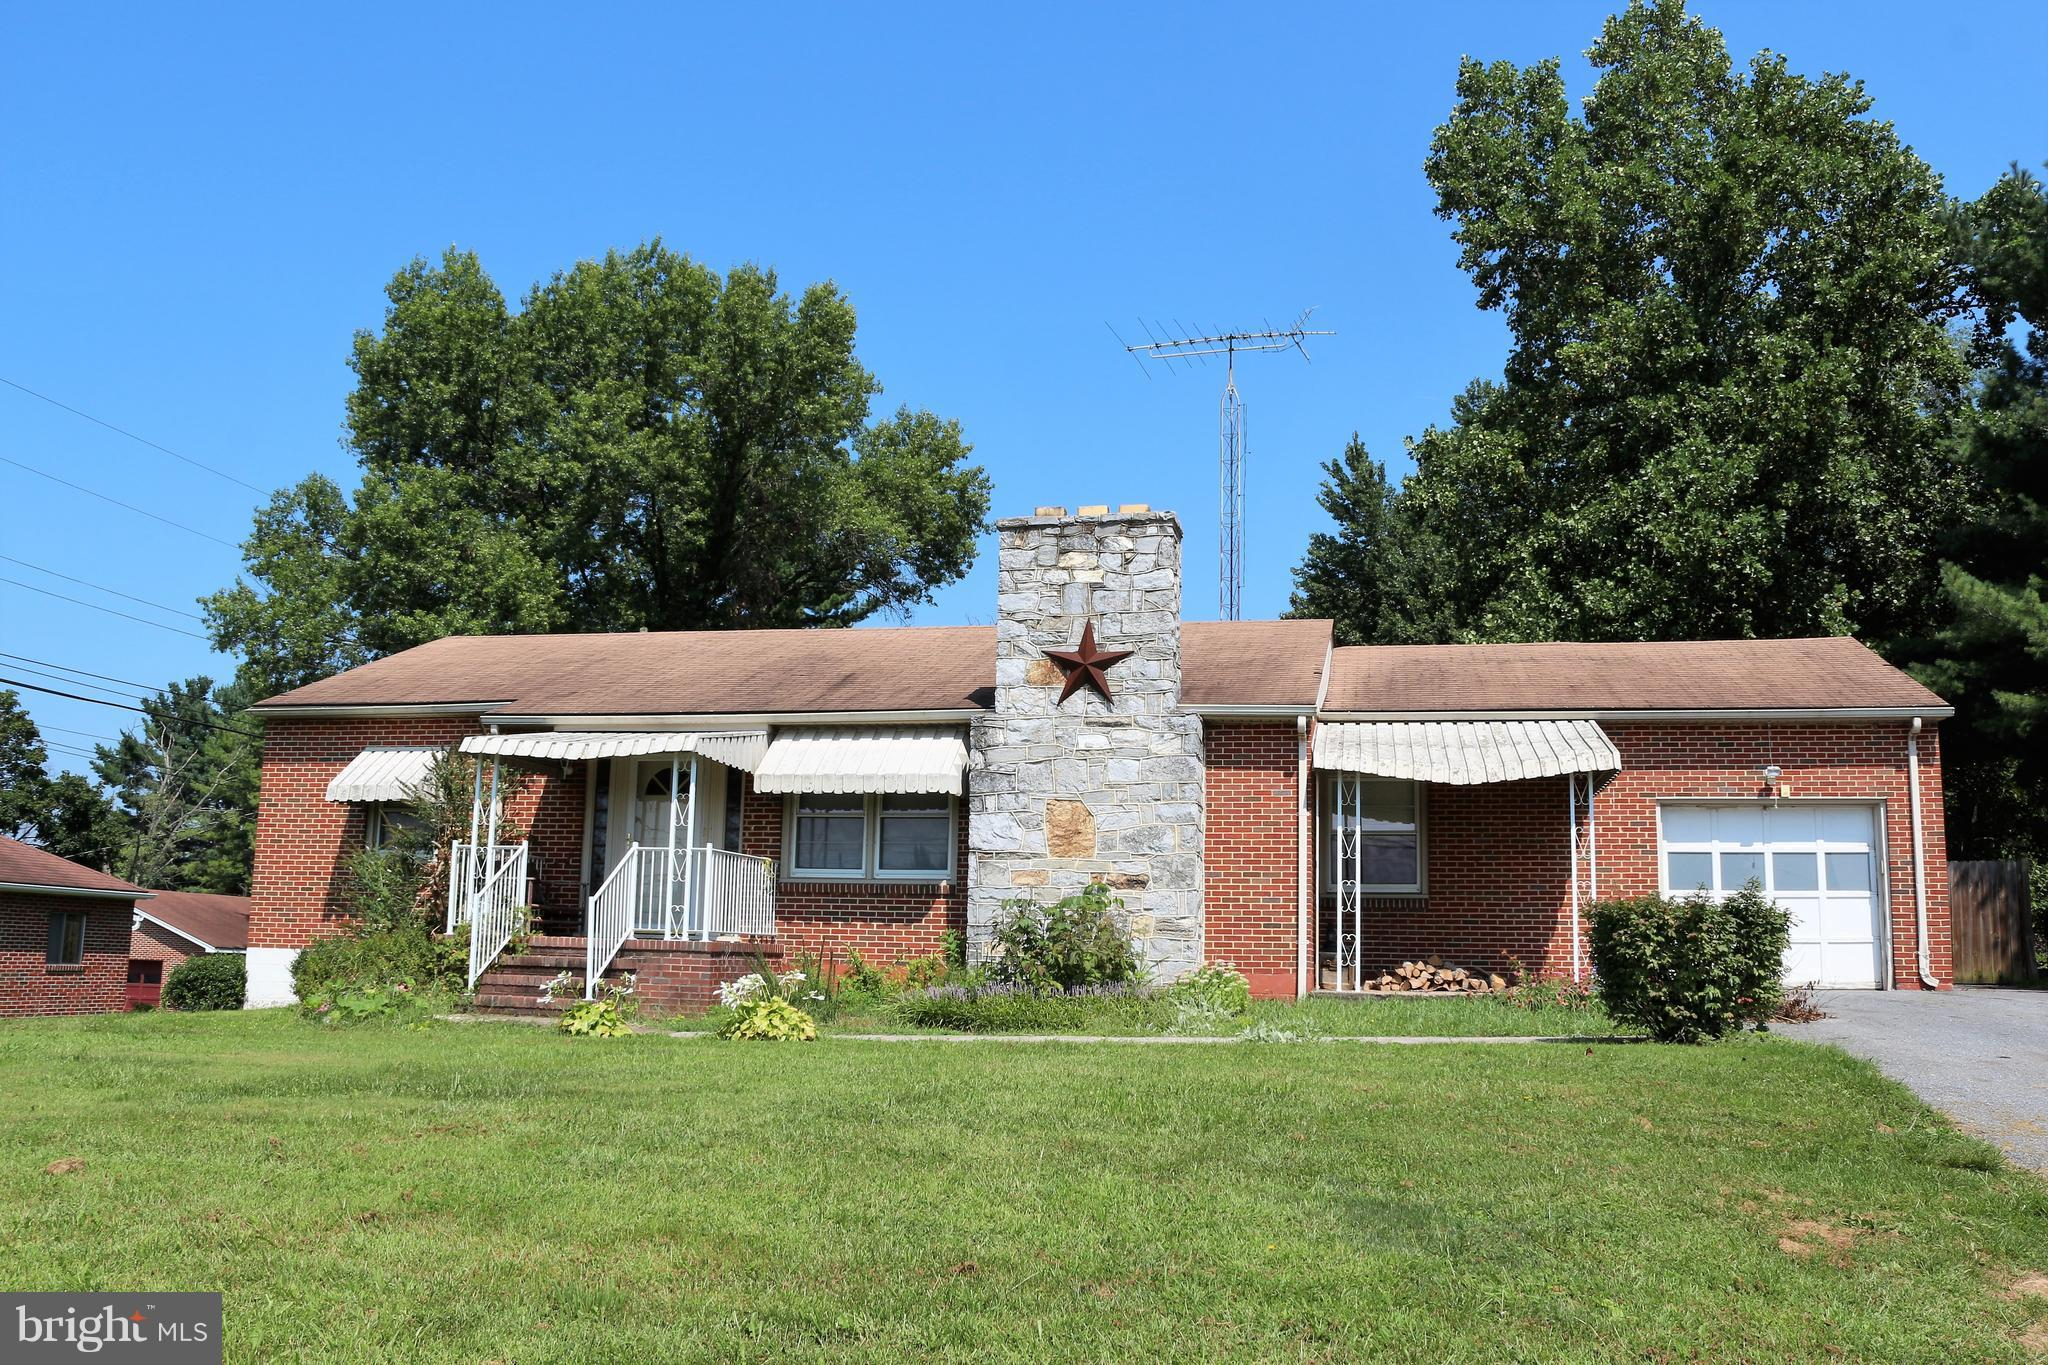 15410 NATIONAL PIKE, CLEAR SPRING, MD 21722